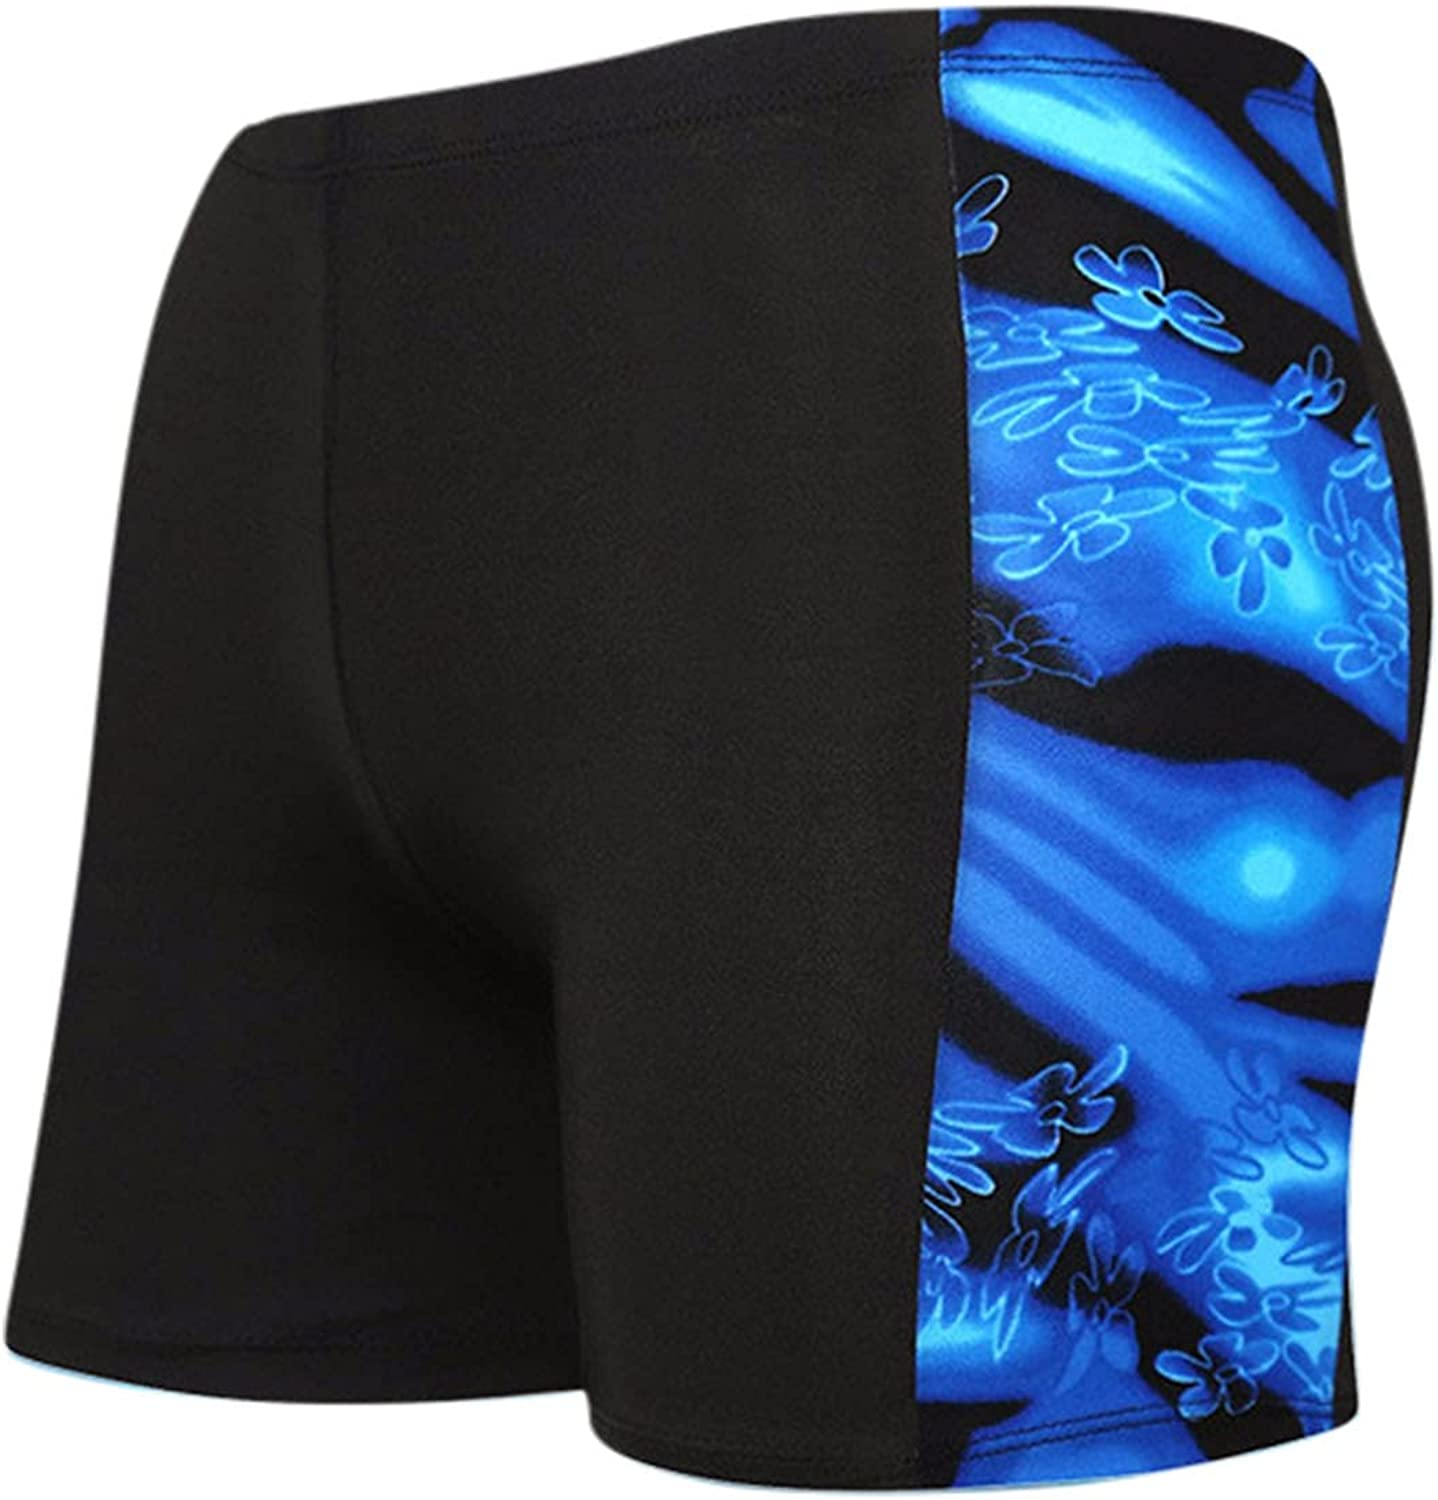 Huangse Mens Swimming Trunks Printed Quick Dry Board Shorts with Drawstring Swimwear Bathing Suits Athletic Shorts